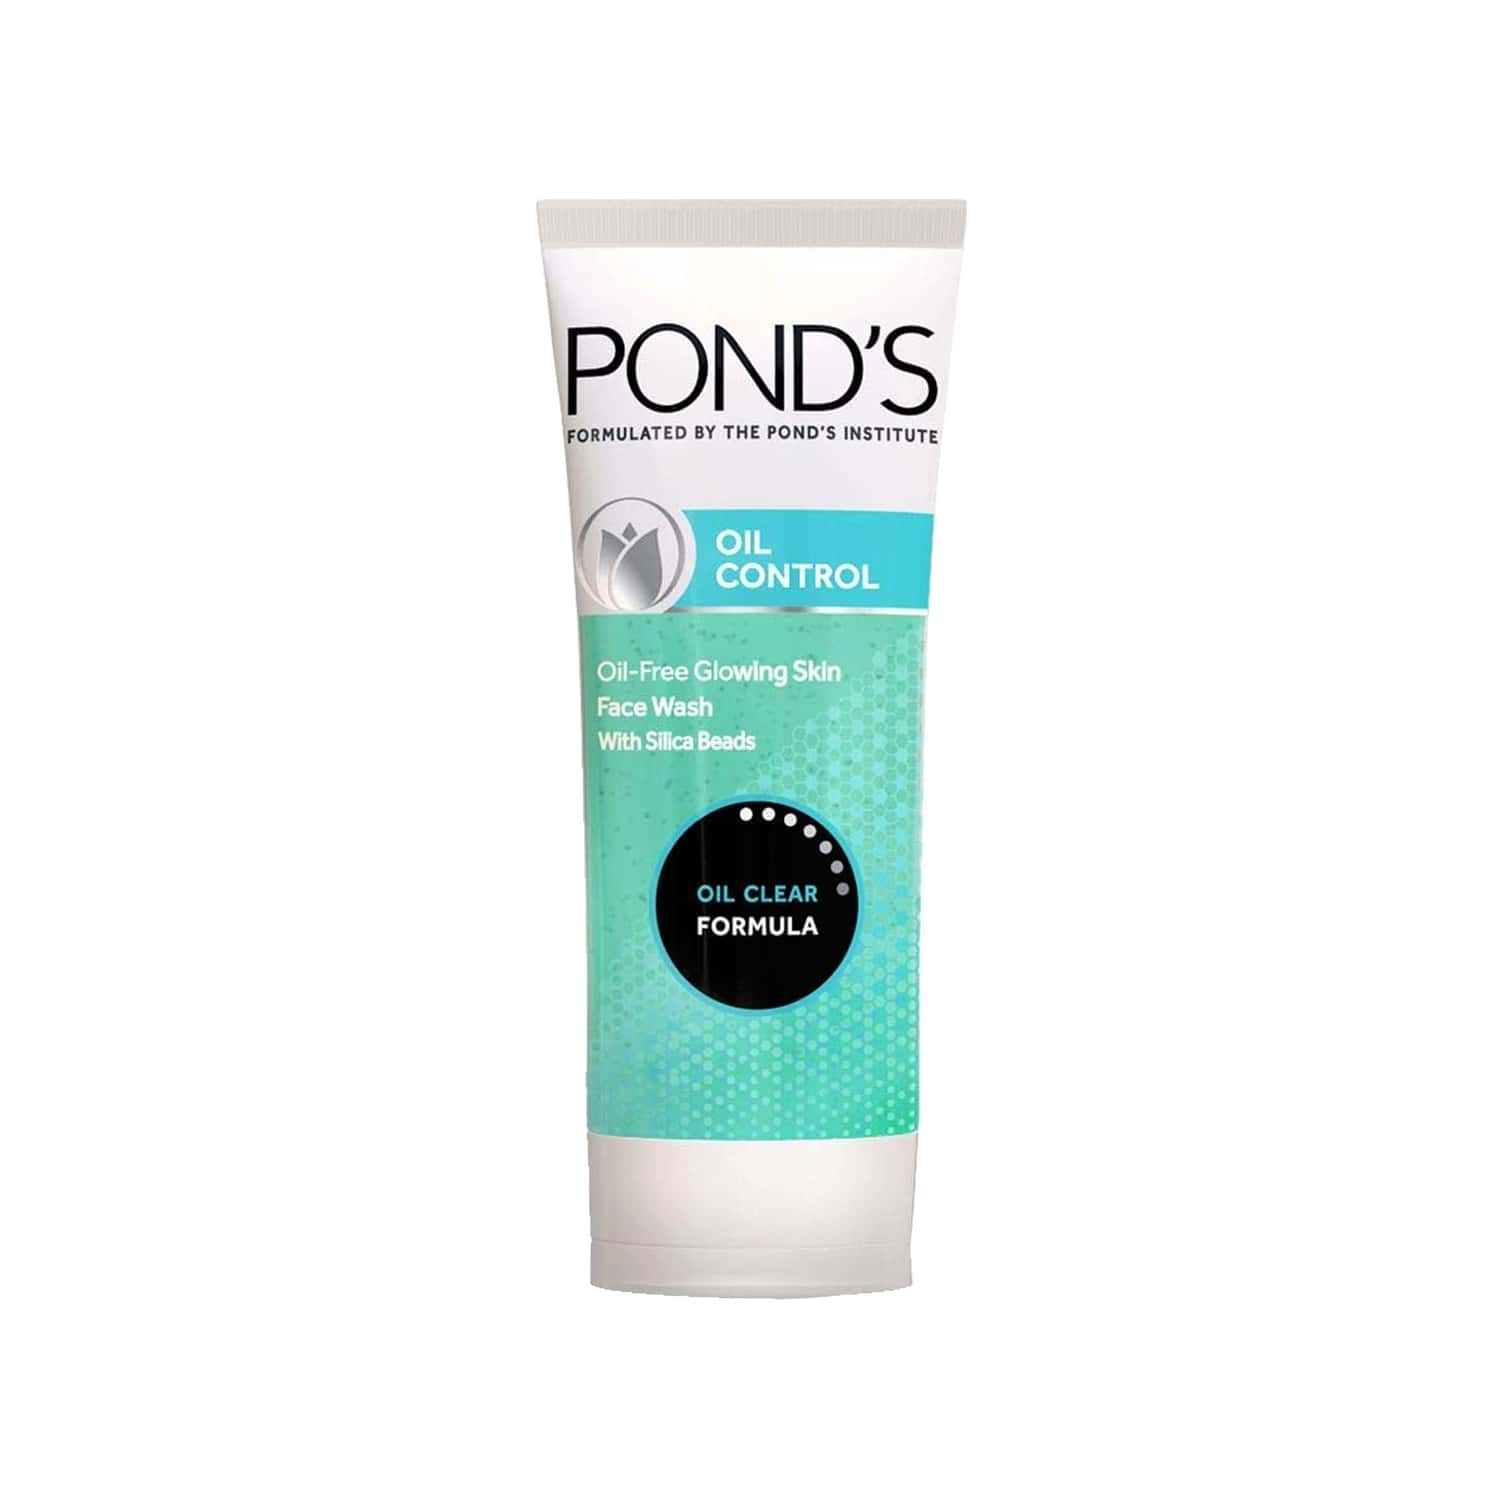 Pond's Oil Control Face Wash-100g